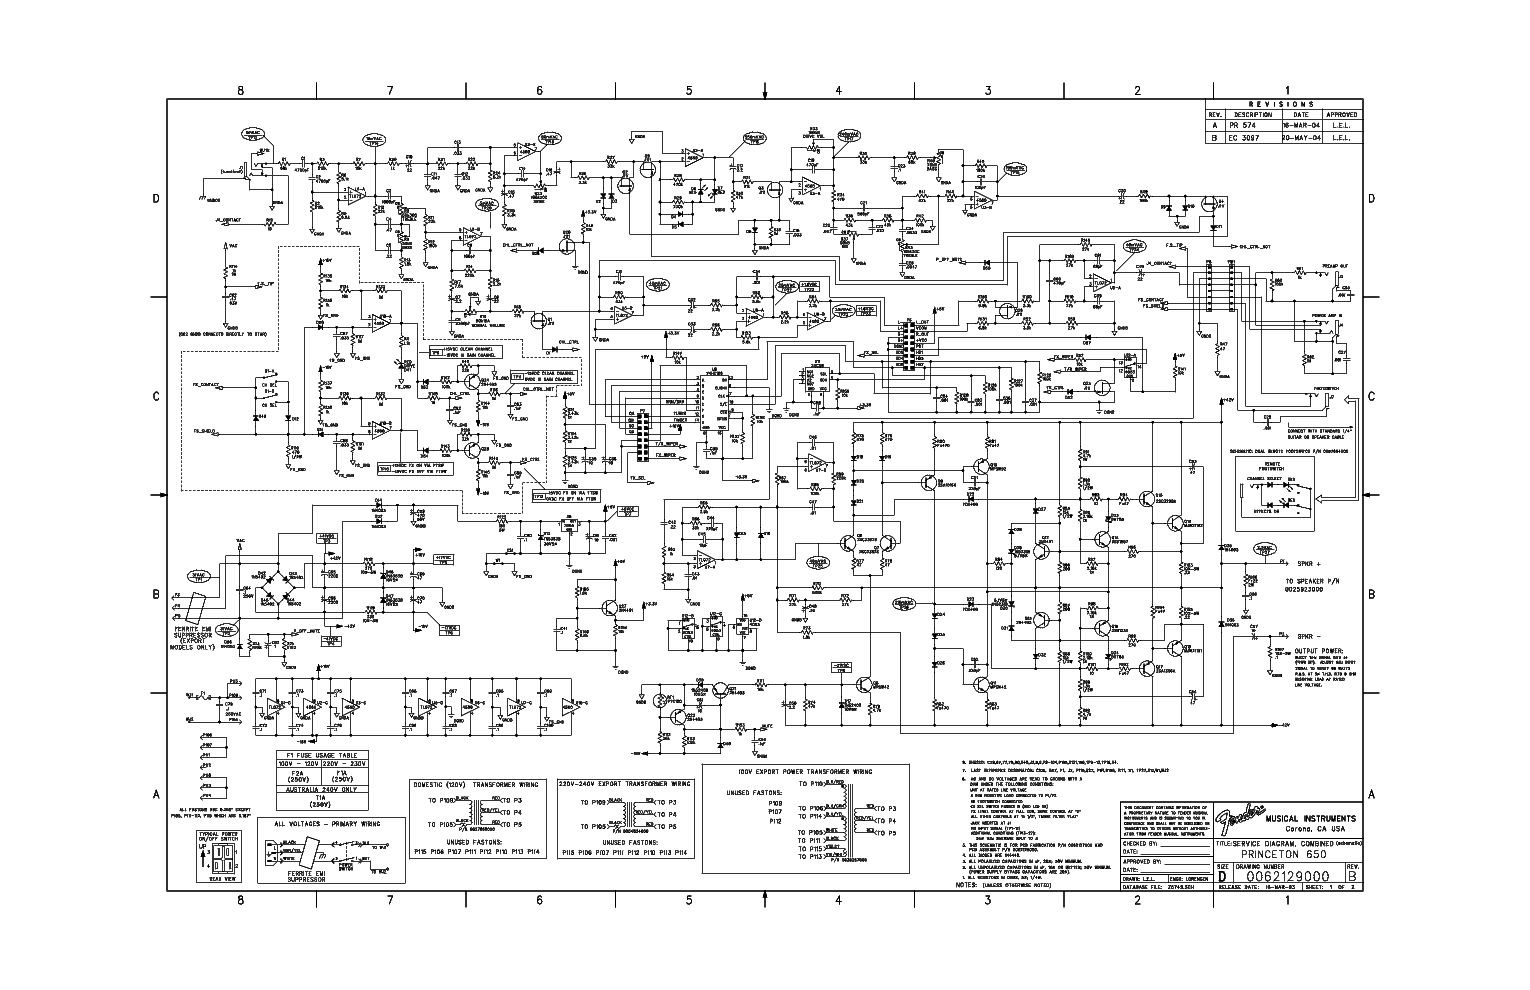 fender princeton 650 schematic schematic fender hot rod Wiring Diagram for Fender Deluxe Precision Bass Fender Stratocaster Wiring Harness Diagram